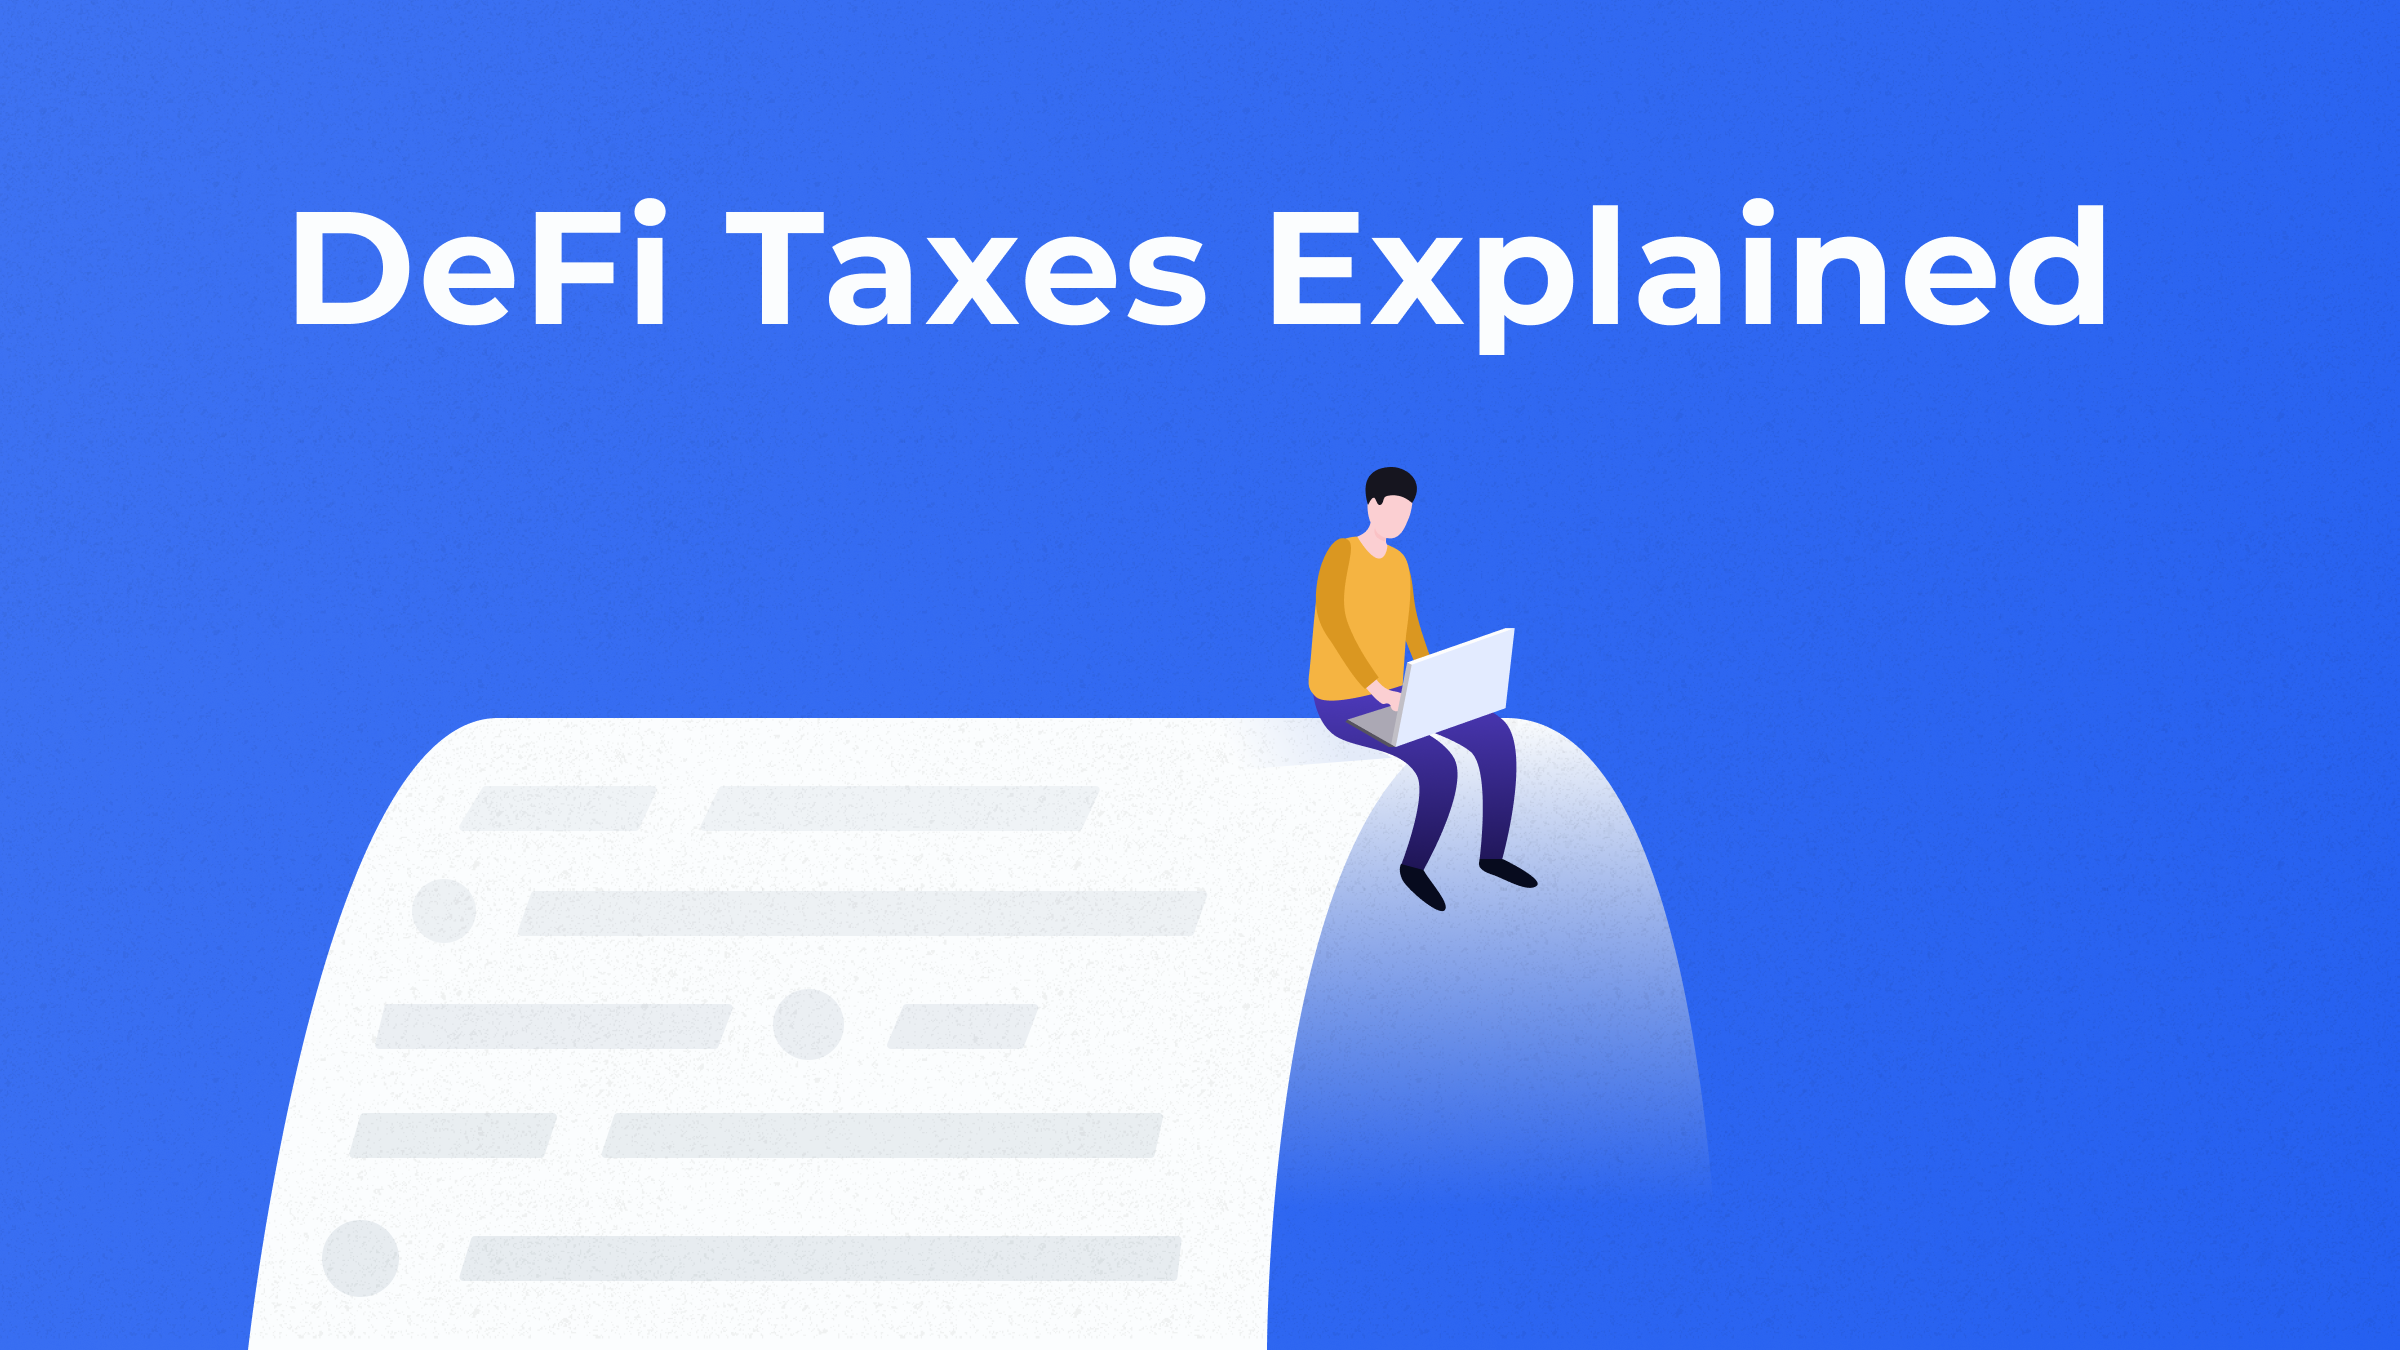 How do DeFi taxes work?